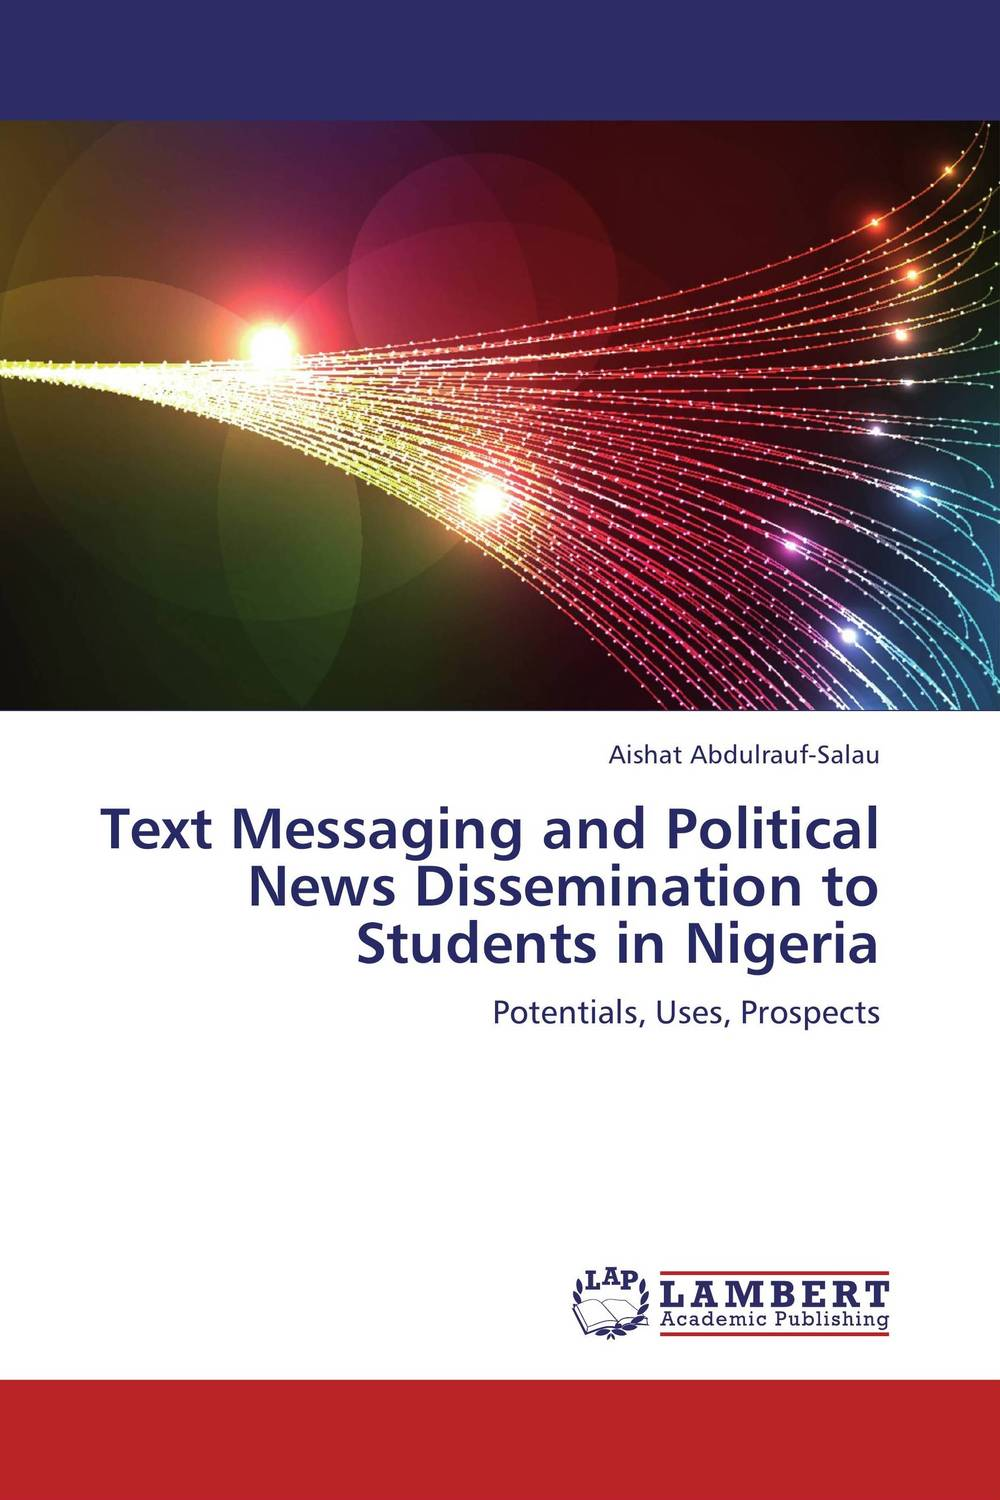 Text Messaging and Political News Dissemination to Students in Nigeria henry r luce and the rise of the american news media